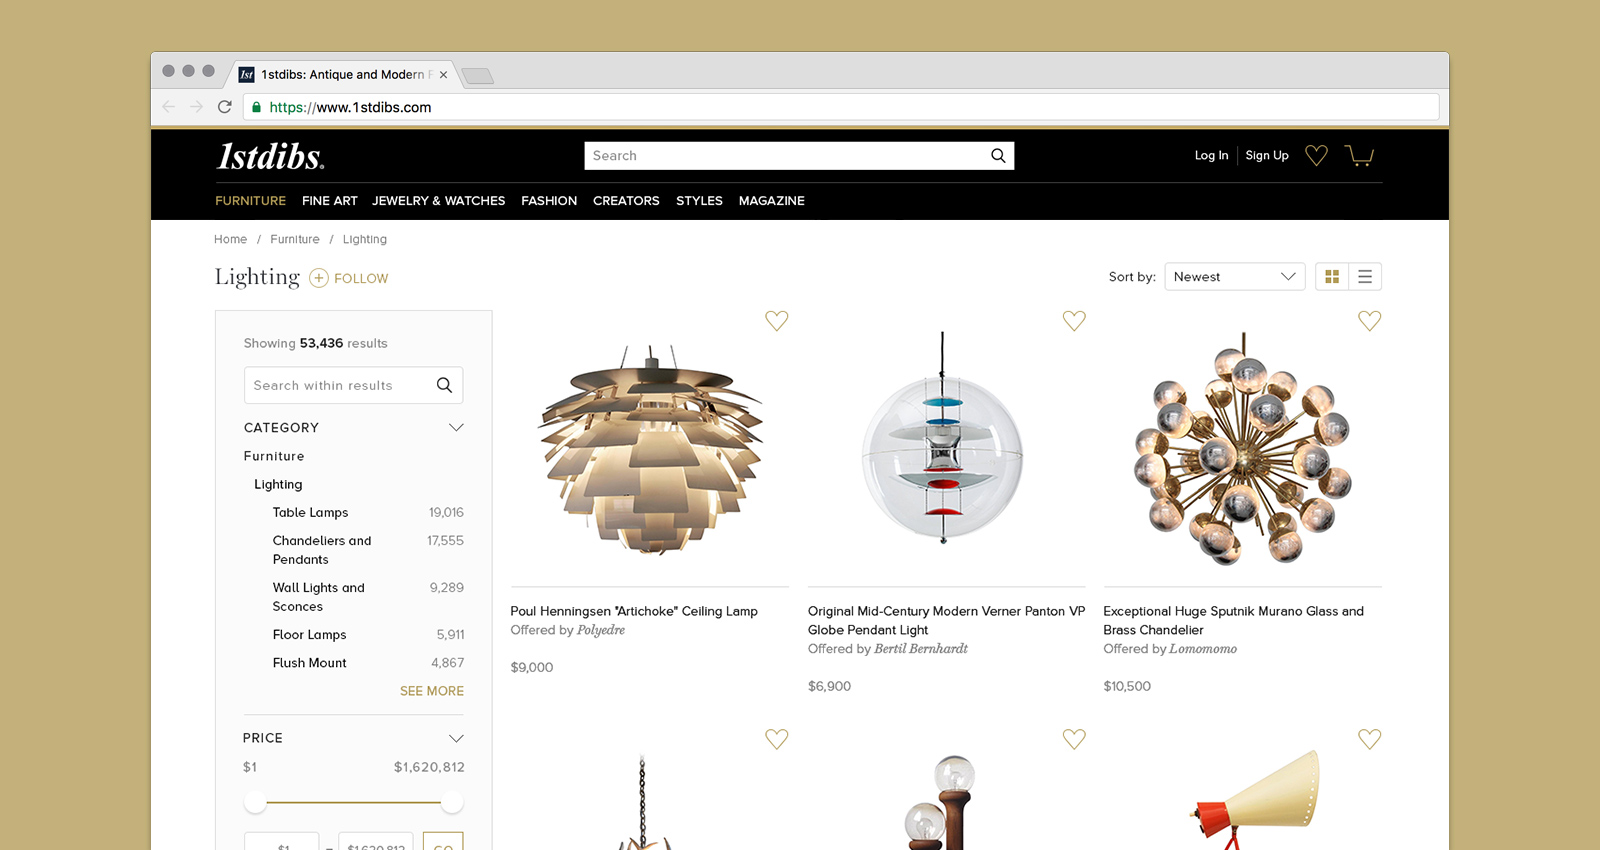 1stdibs_ecomm-feature_04